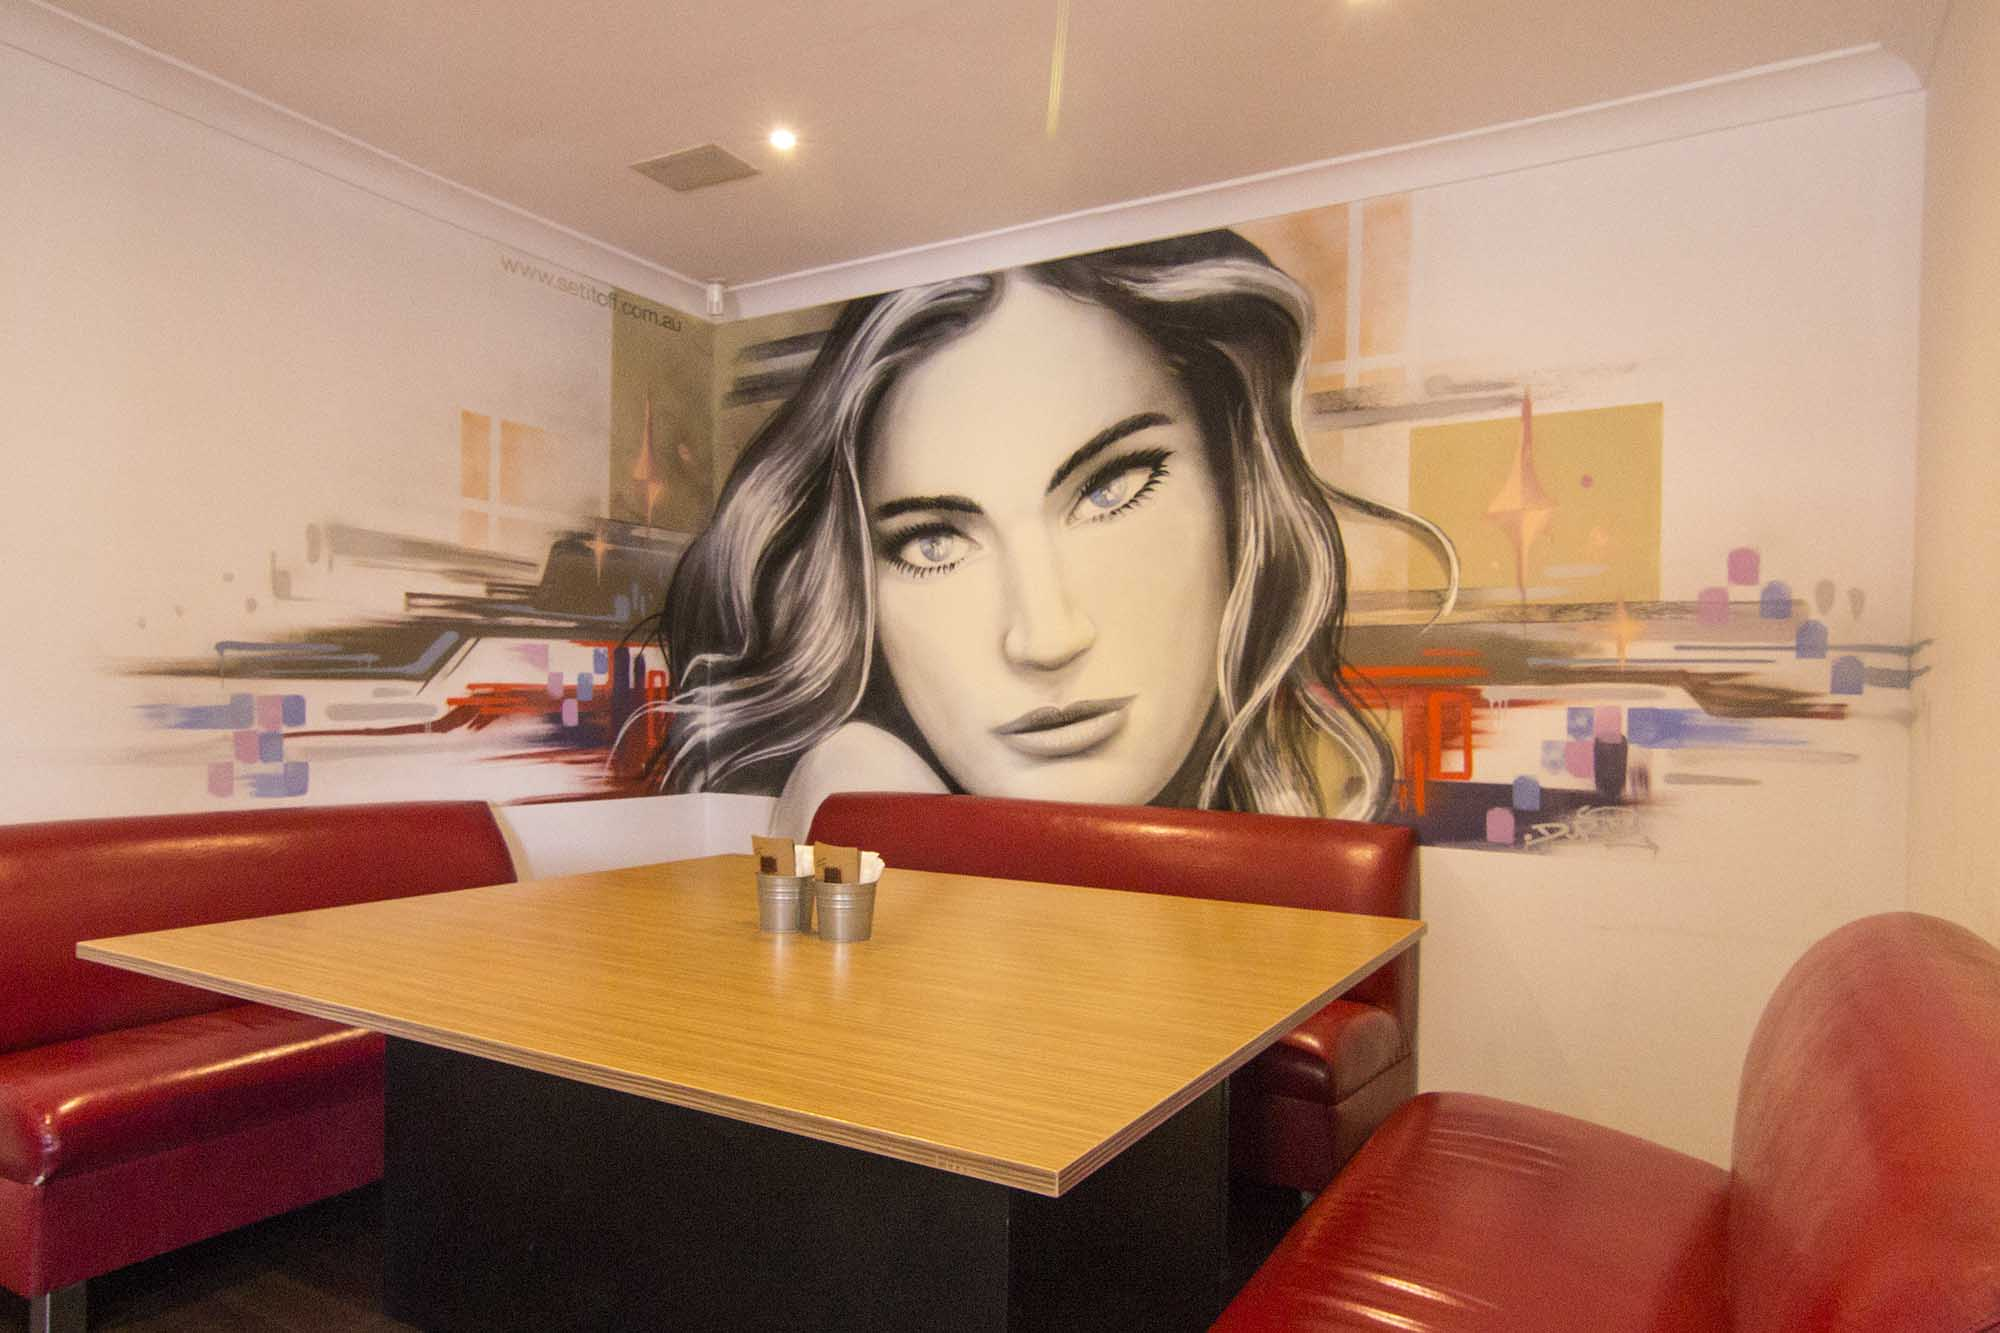 Graffiti mural portrait inside restaurant.